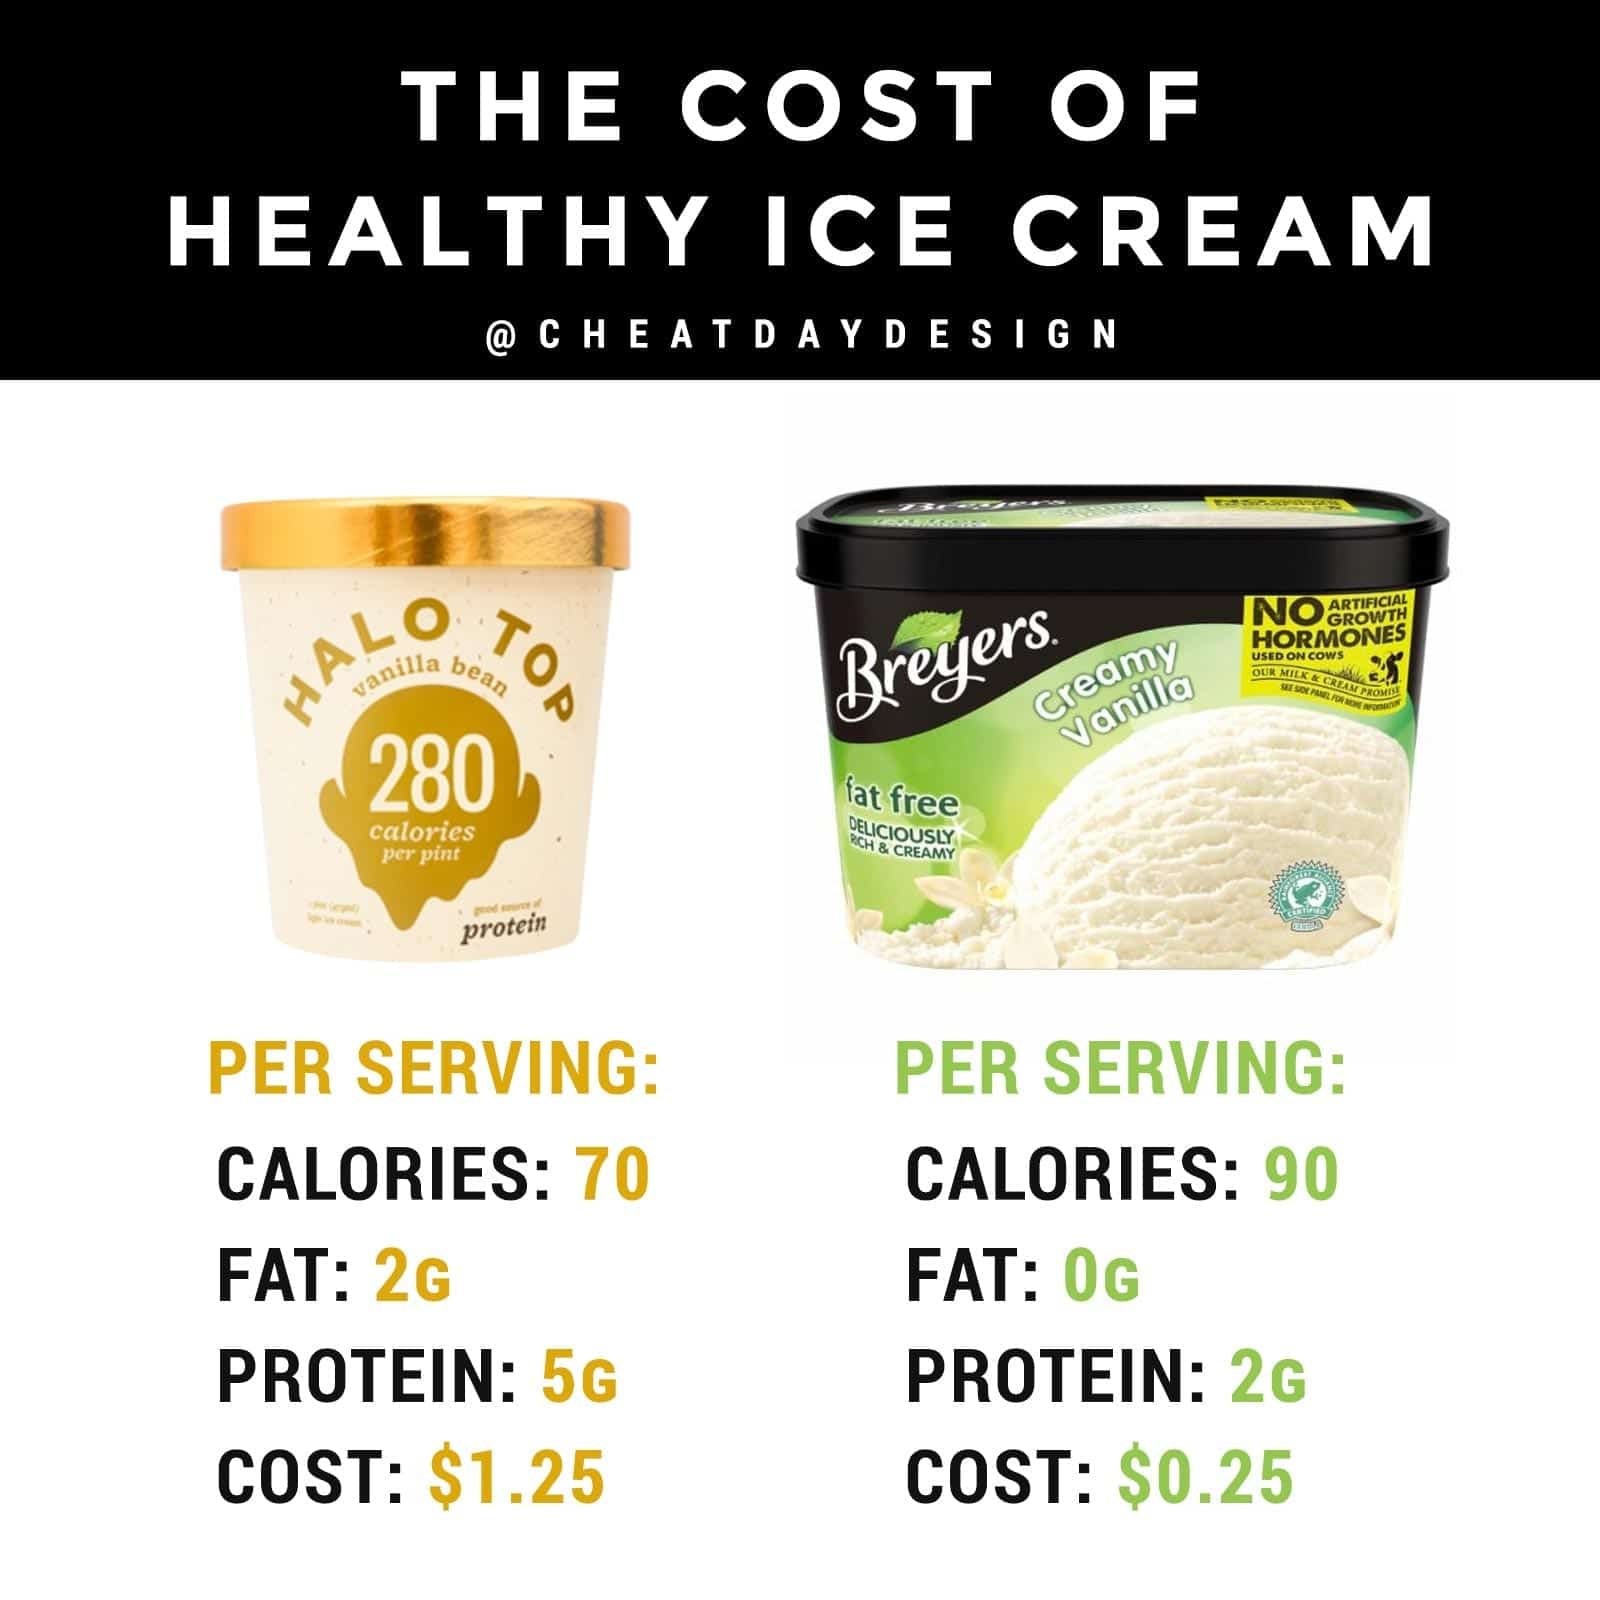 Halo Top Ice Cream vs Breyers